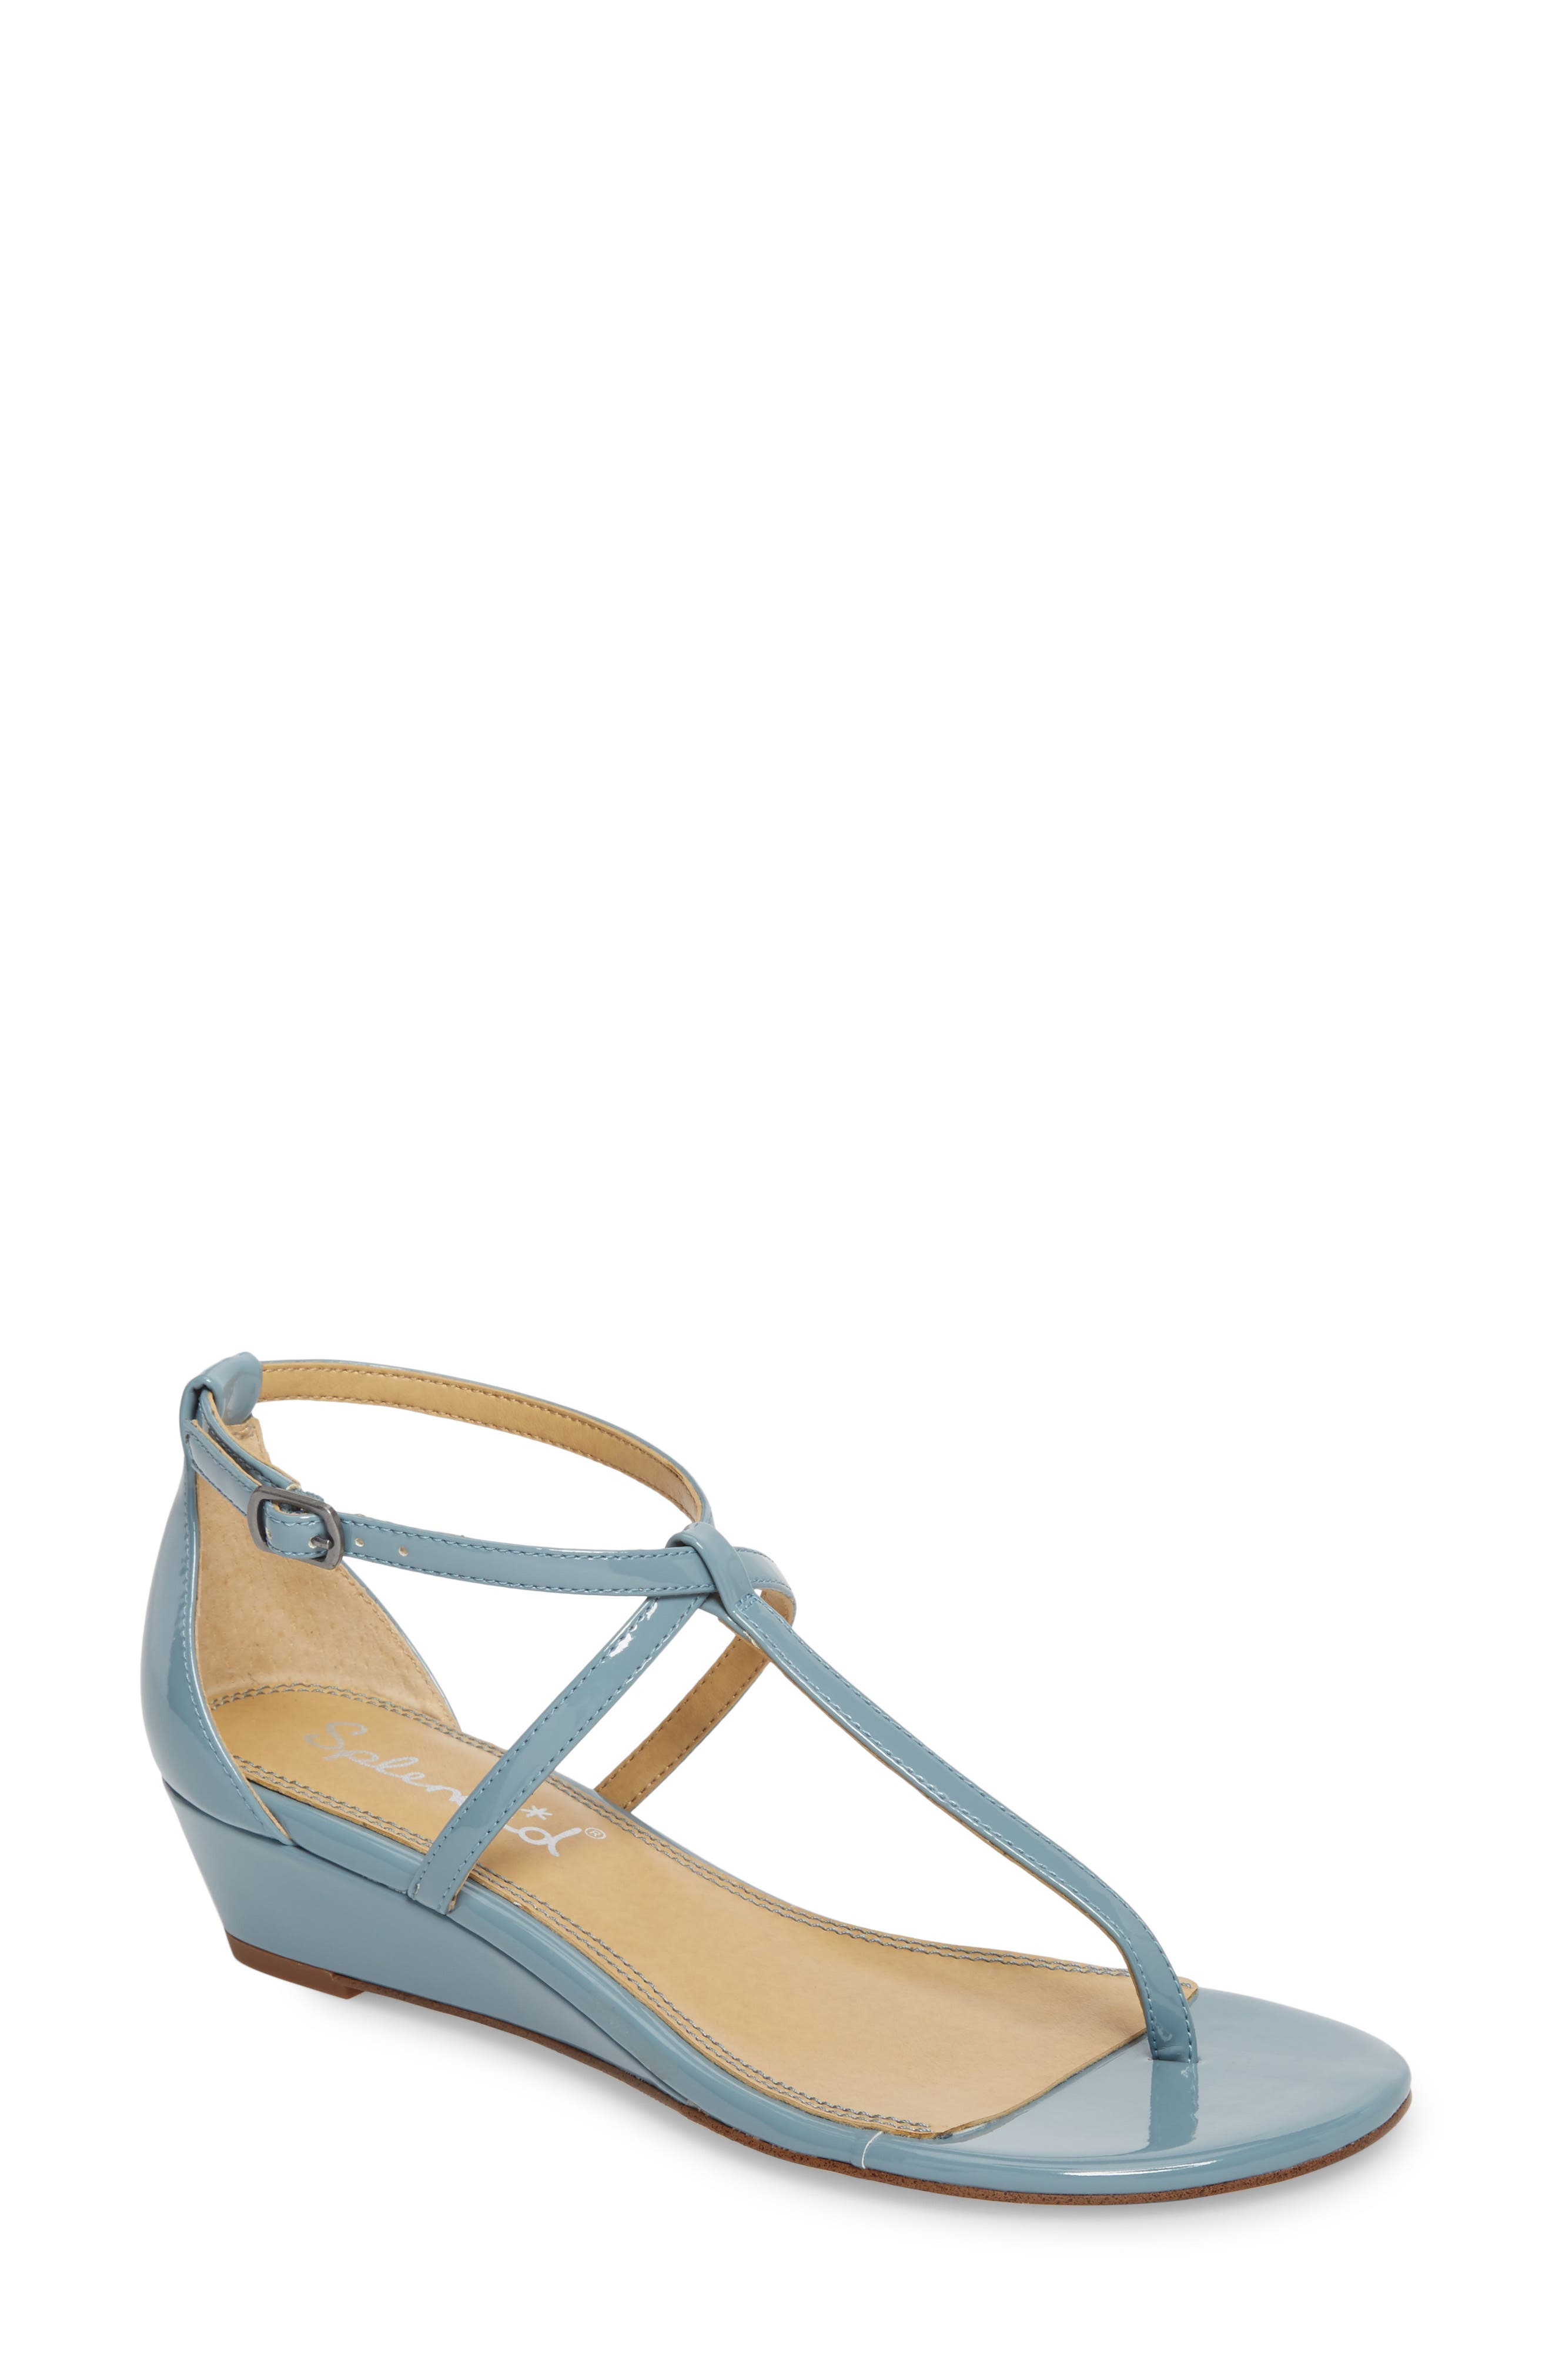 Bryce T-Strap Wedge Sandal,                             Main thumbnail 4, color,